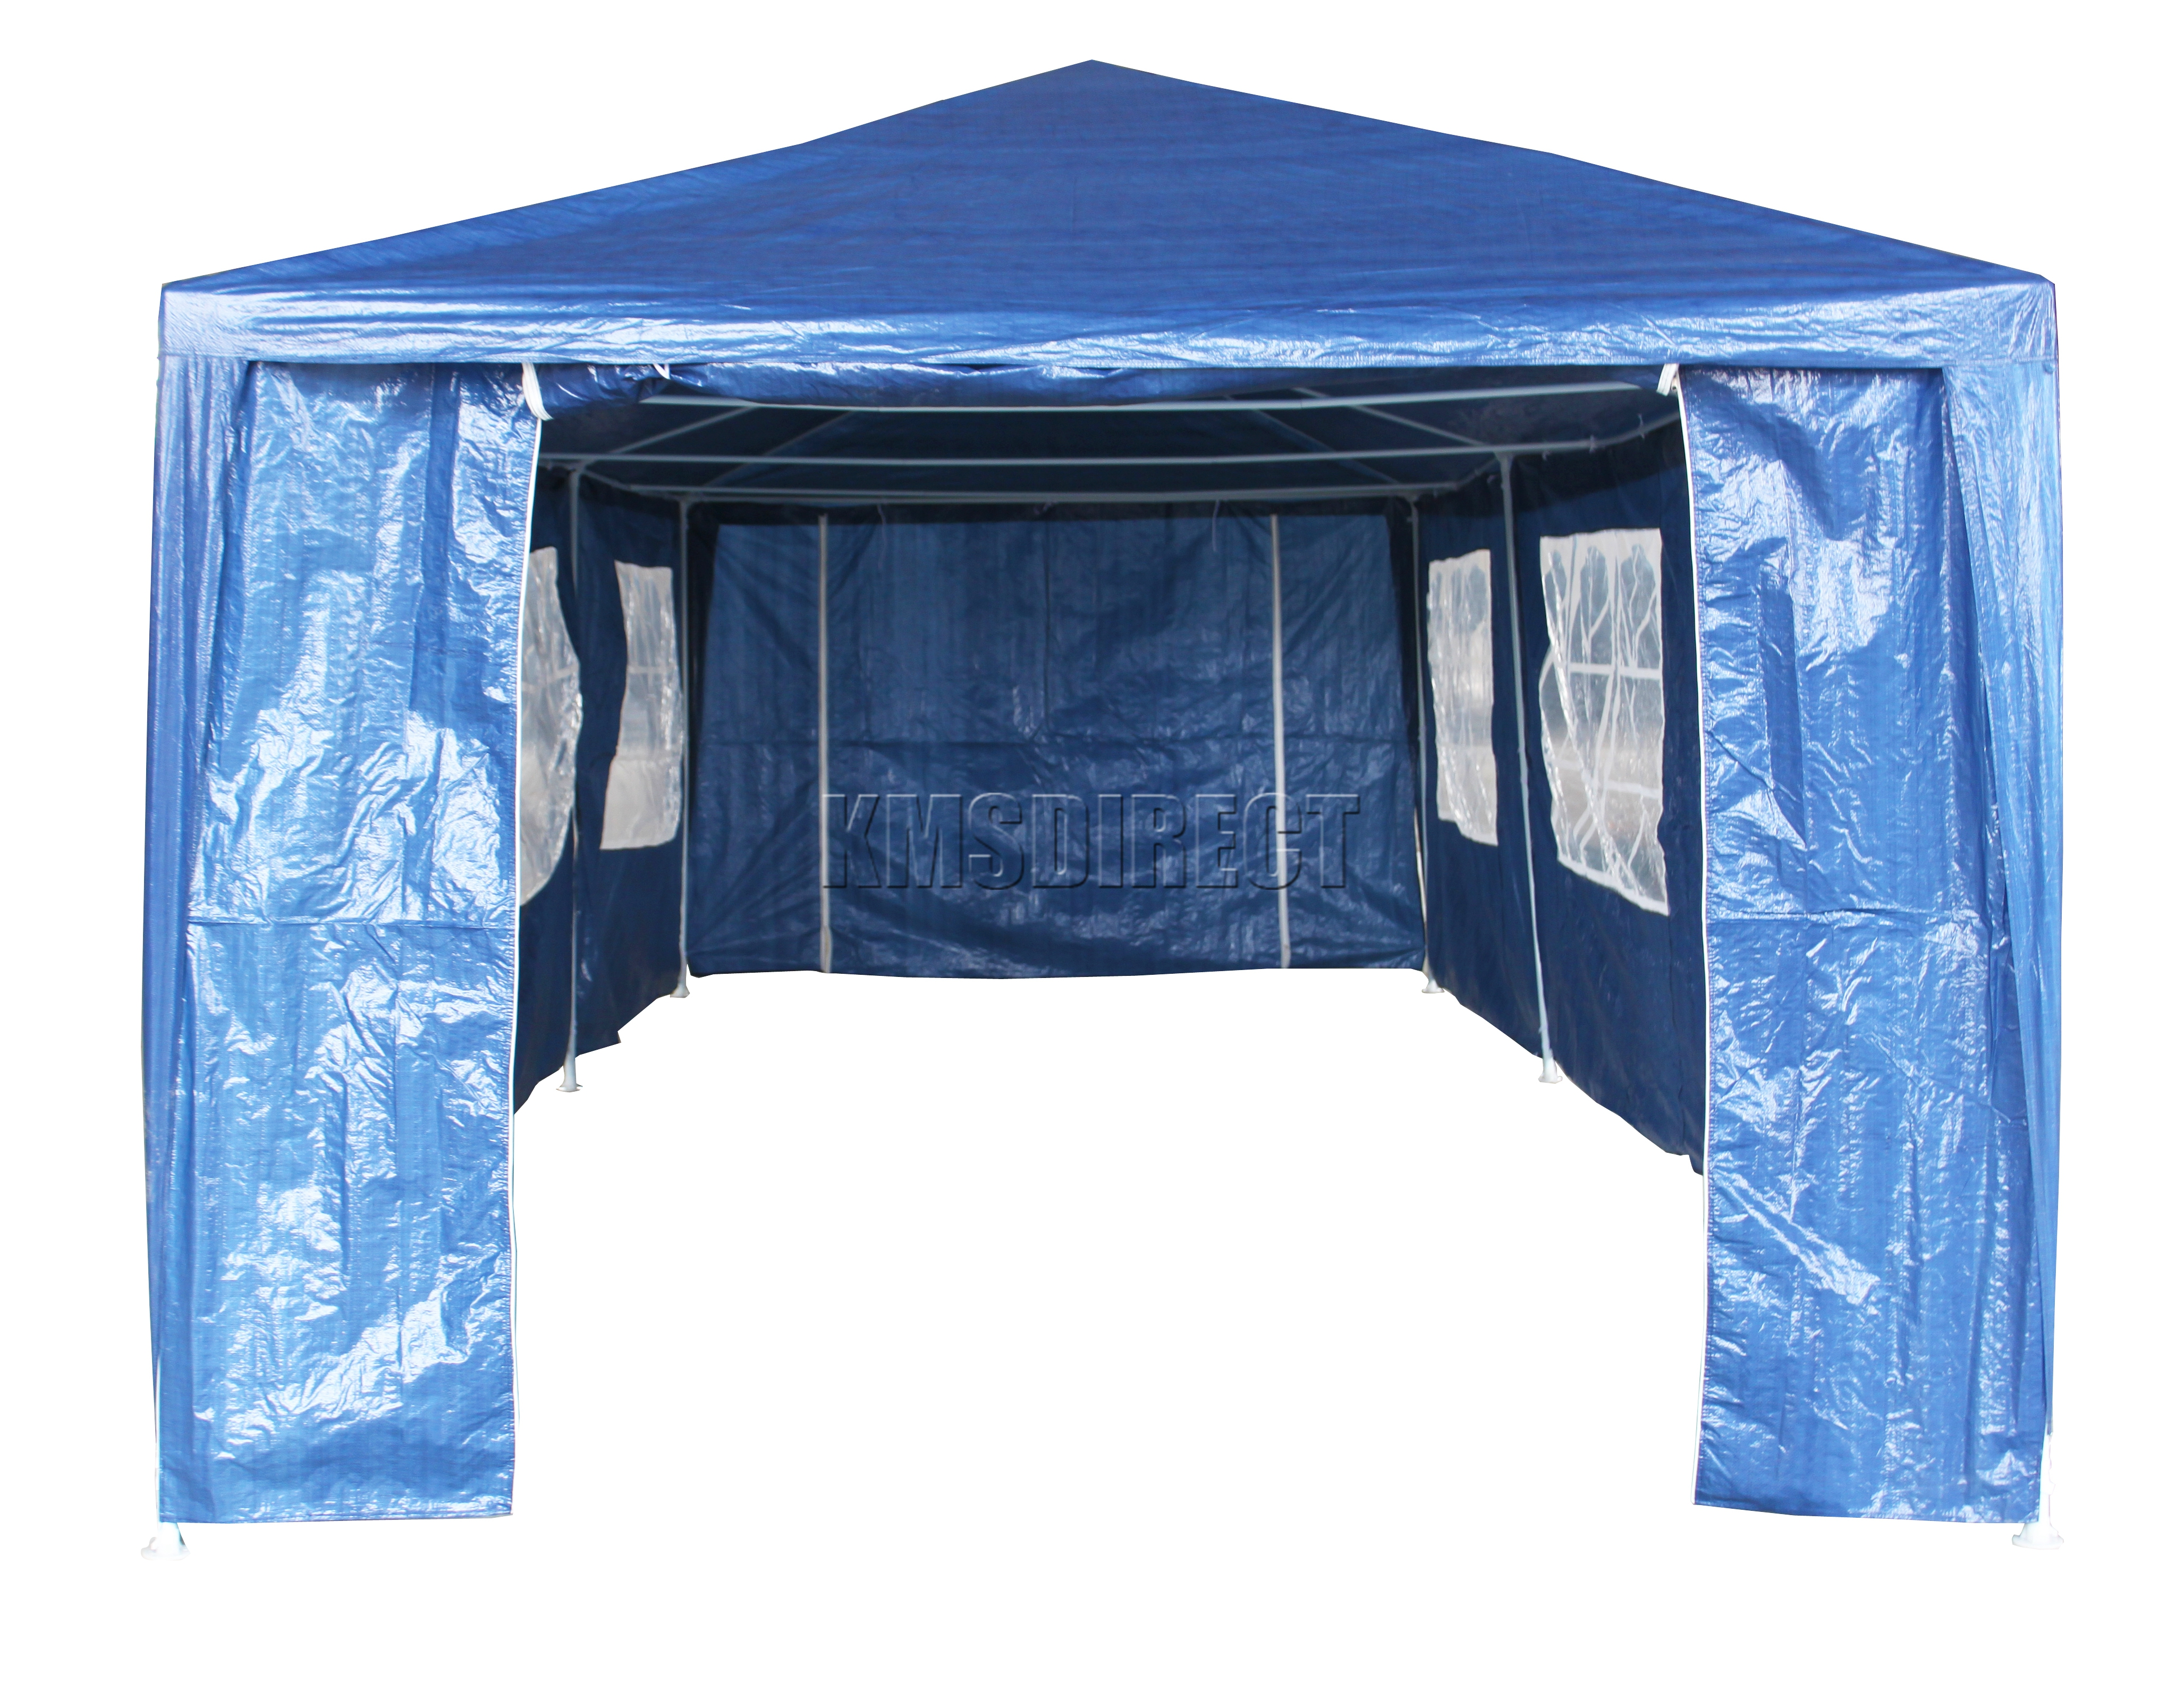 3m x 9m 120g Waterproof Outdoor PE Garden Gazebo Marquee